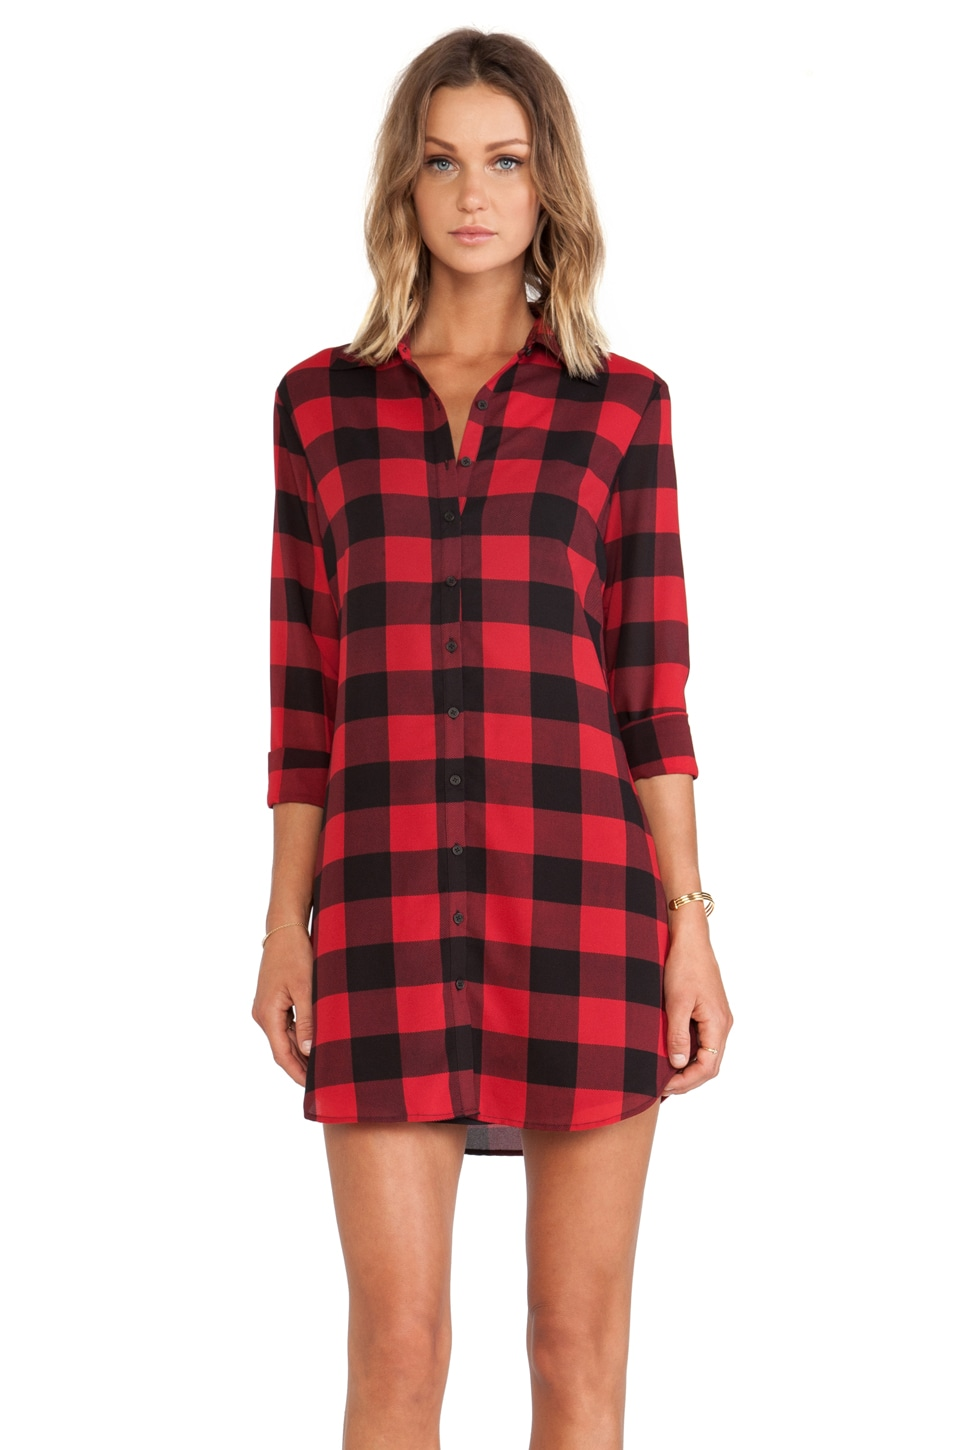 Find great deals on eBay for red plaid dress. Shop with confidence.